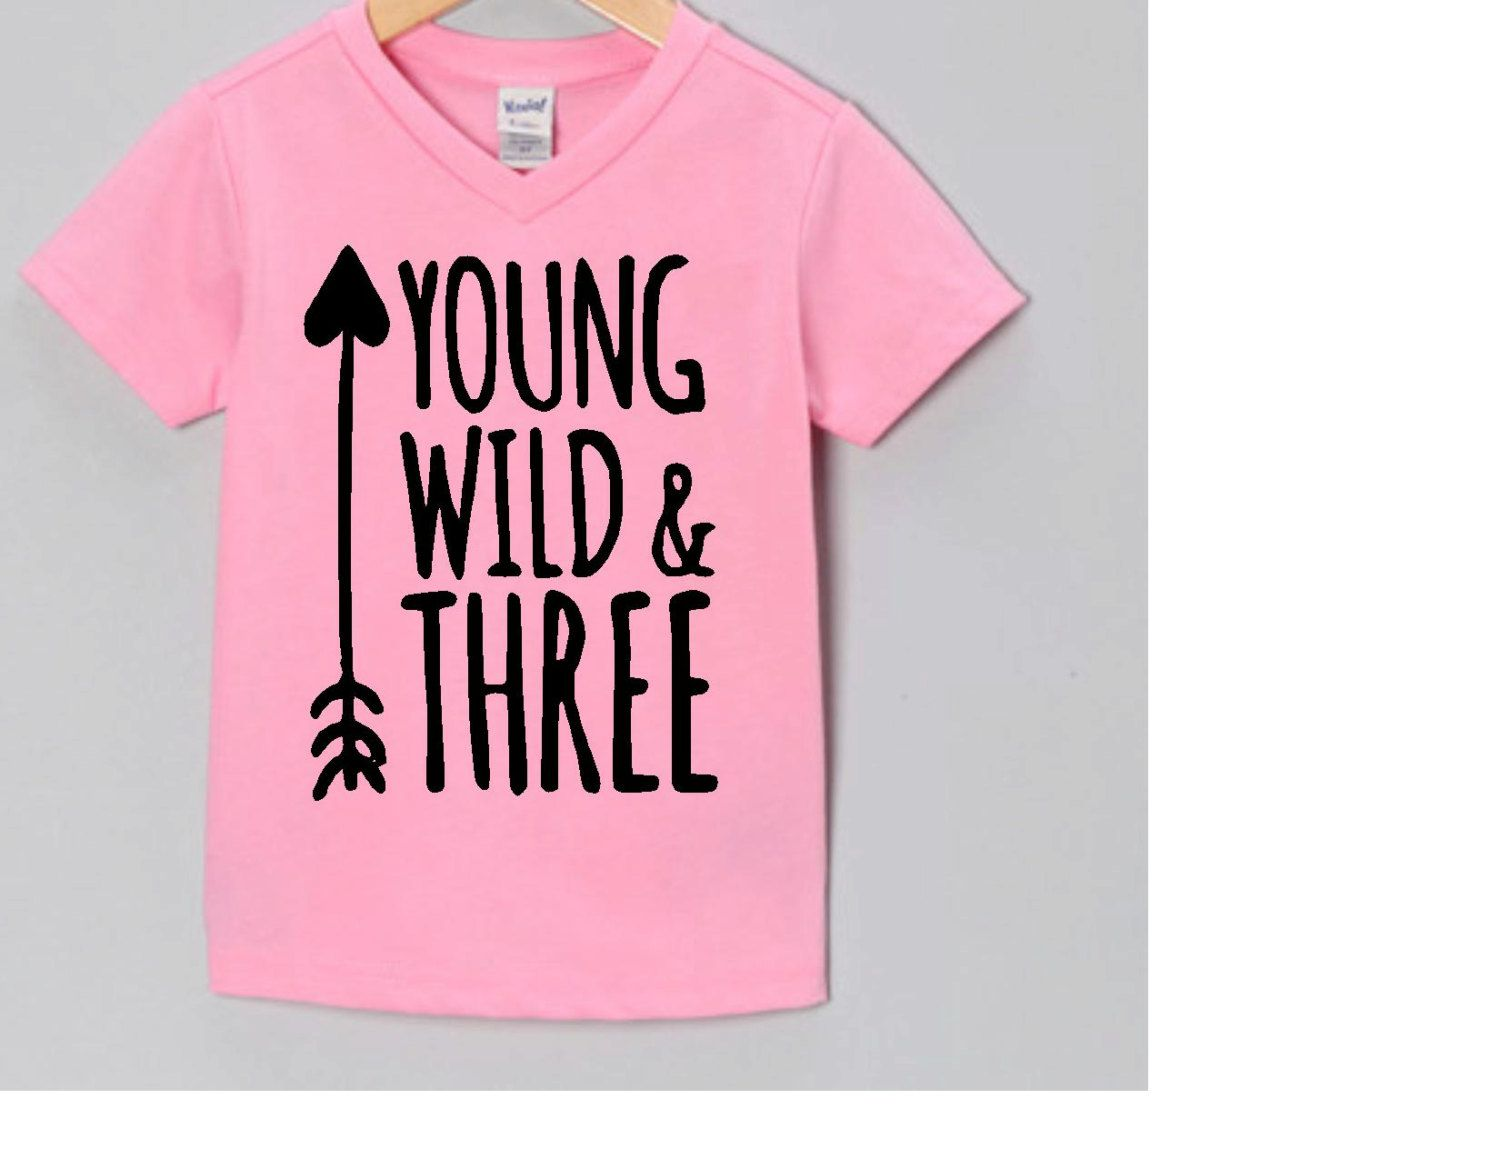 Toddler Girl Shirt Three Wildfreekidskid Gifts3rd Birthday Shirtsgirl Giftsbabygirl Shirtbaby Turns 3third By CayShaeDesigns On Etsy